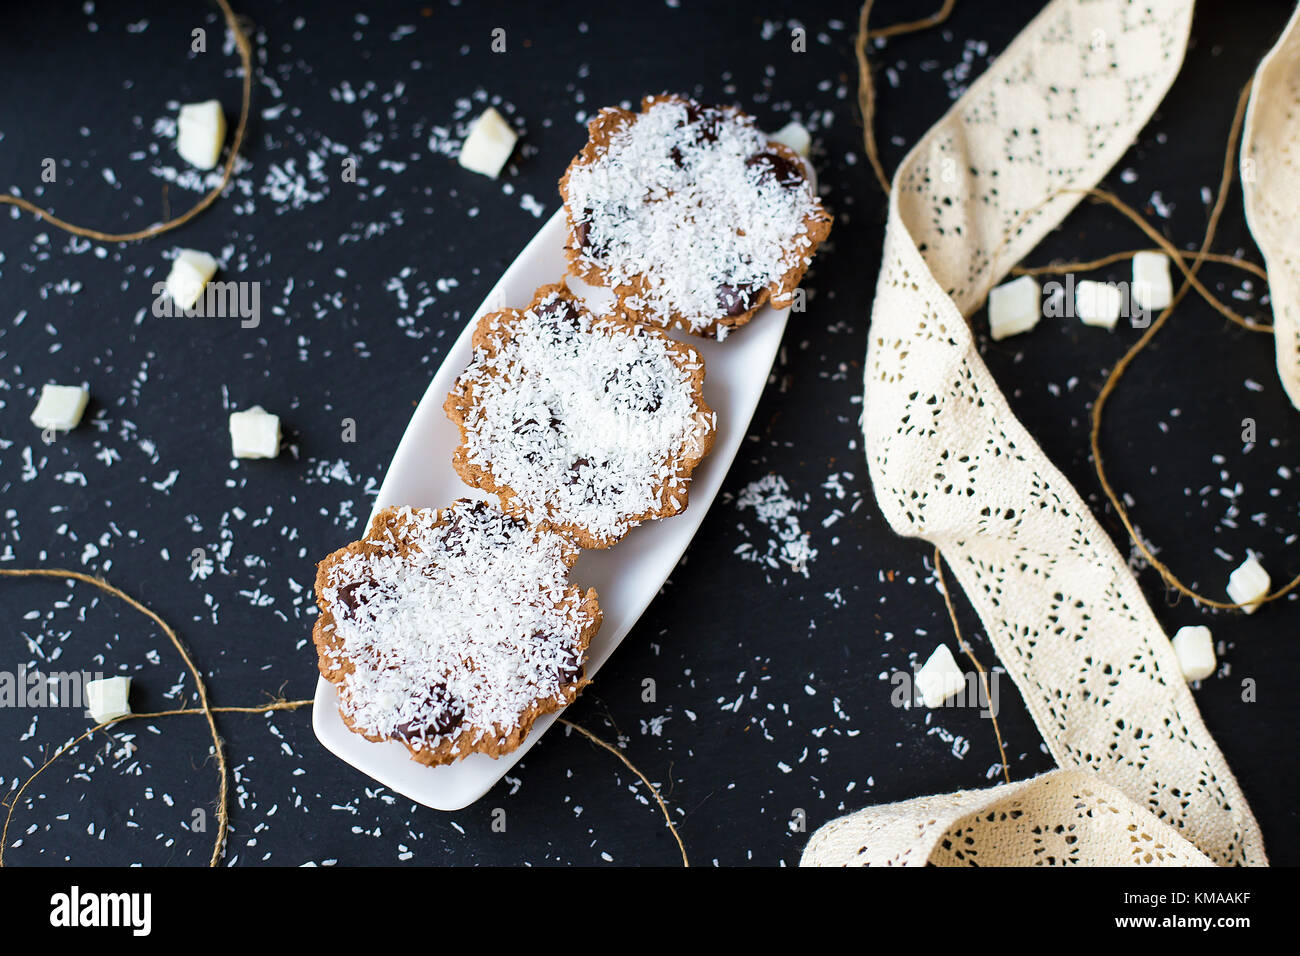 coconut muffins on a black background - Stock Image